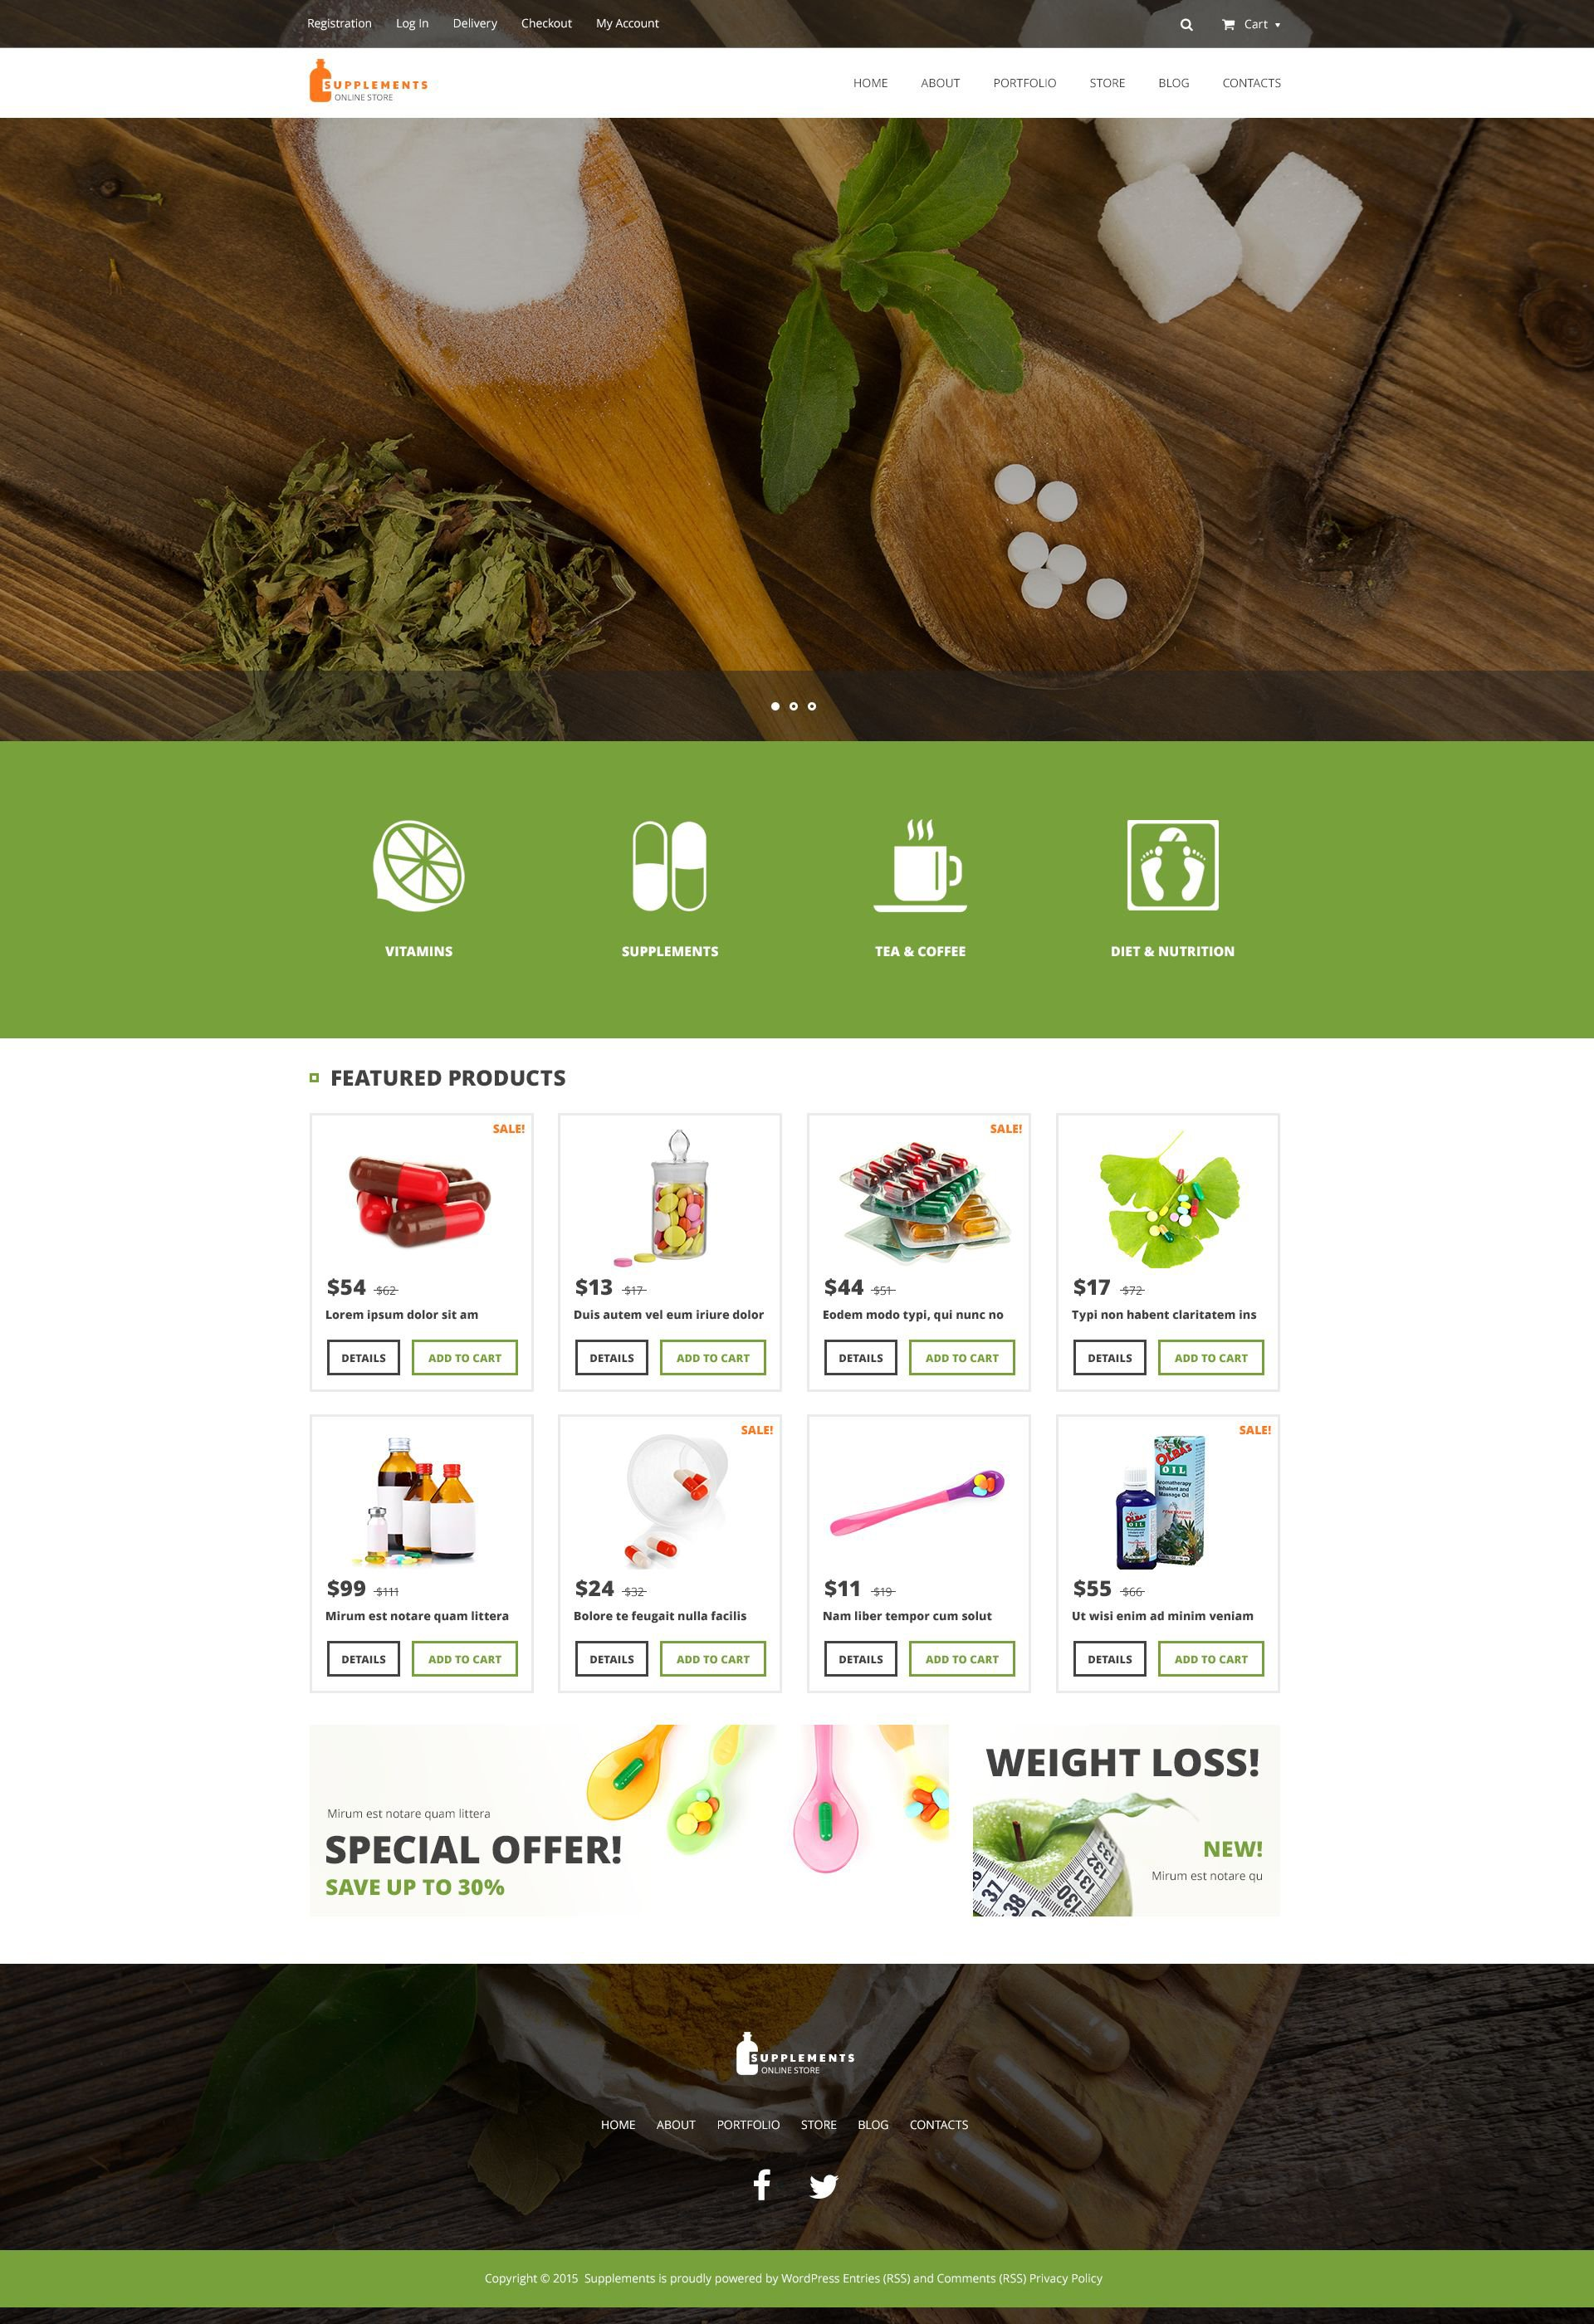 The Supplements Drugs Store WooCommerce Design 53021, one of the best WooCommerce themes of its kind (wedding, most popular), also known as supplements drugs store WooCommerce template, medicine WooCommerce template, cure WooCommerce template, pills WooCommerce template, tablets WooCommerce template, pharmacy WooCommerce template, online disease WooCommerce template, medical care WooCommerce template, capsules WooCommerce template, ointment WooCommerce template, medicare WooCommerce template, prescription WooCommerce template, vitamins WooCommerce template, medicaments WooCommerce template, medical supplies WooCommerce template, medicines WooCommerce template, supplements WooCommerce template, healthy and related with supplements drugs store, medicine, cure, pills, tablets, pharmacy, online disease, medical care, capsules, ointment, medicare, prescription, vitamins, medicaments, medical supplies, medicines, supplements, healthy, etc.